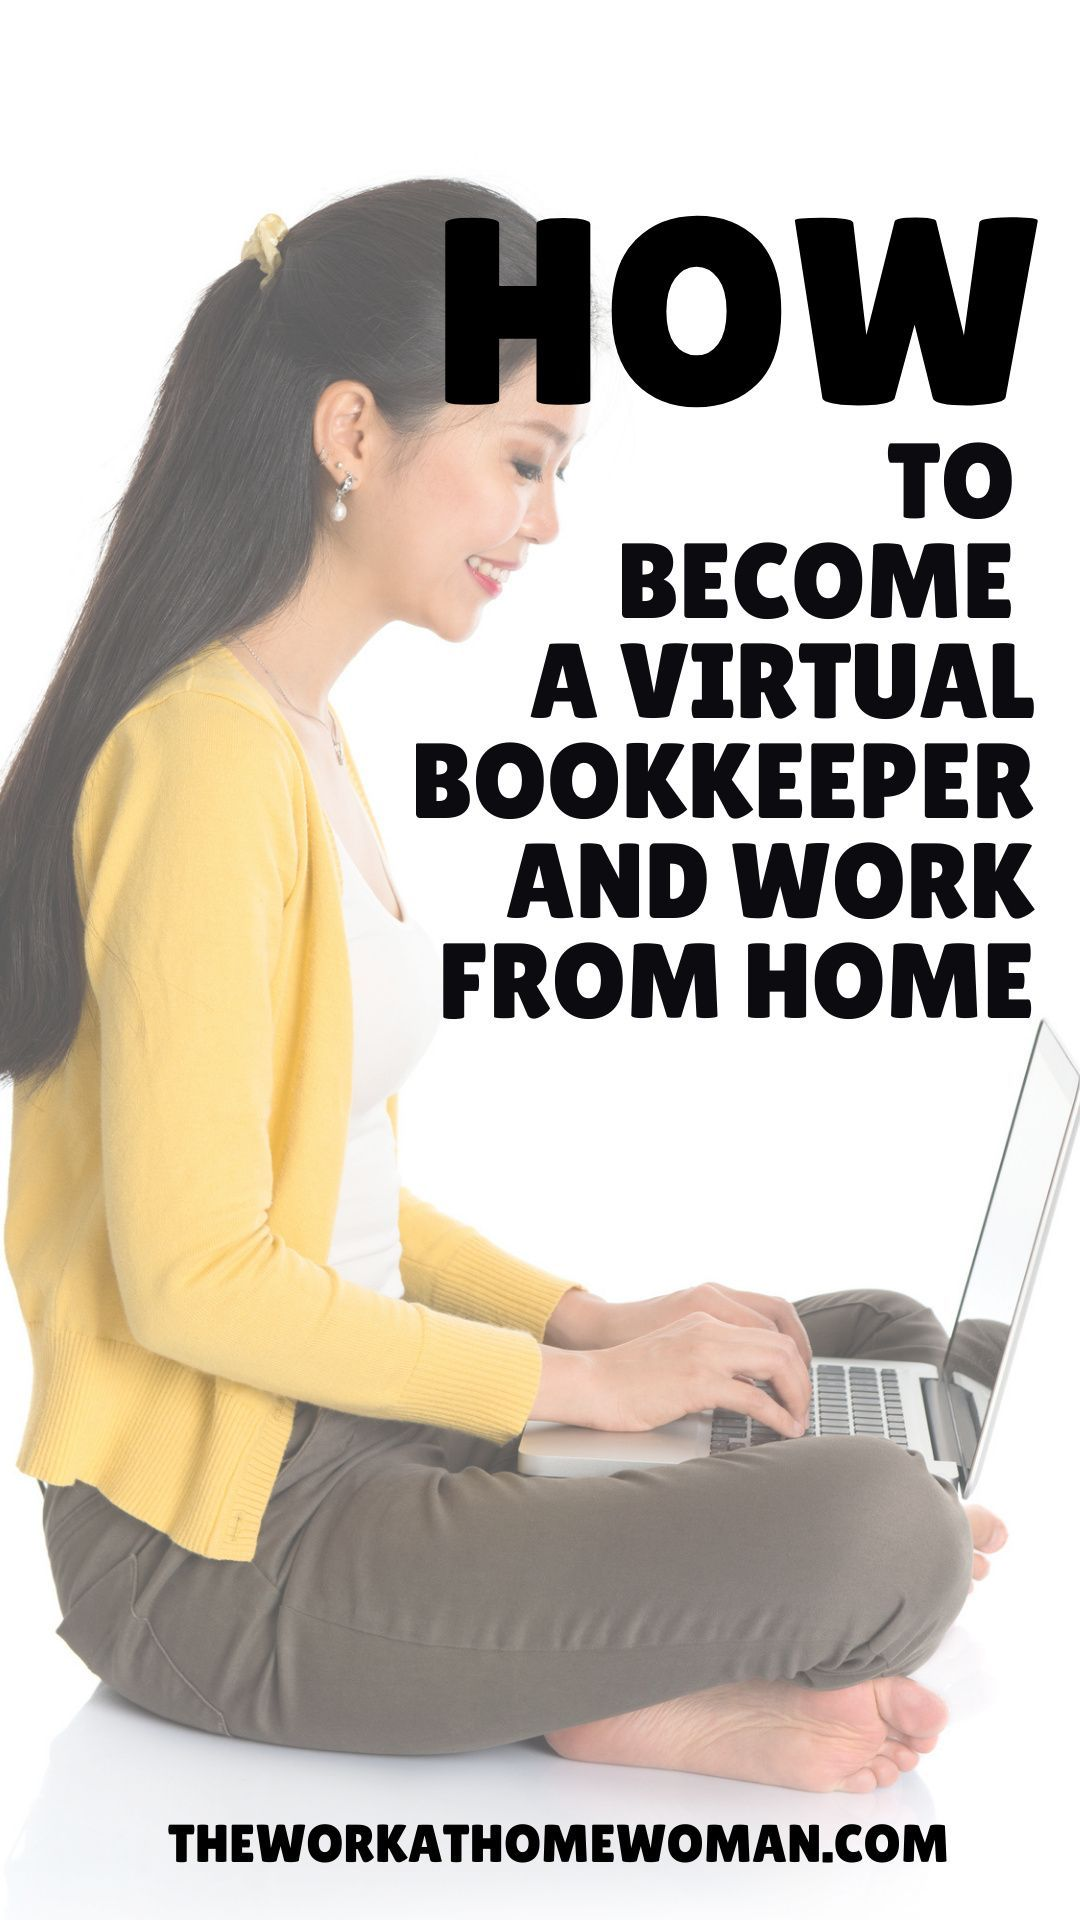 How to work from home as a bookkeeper in 2021 working